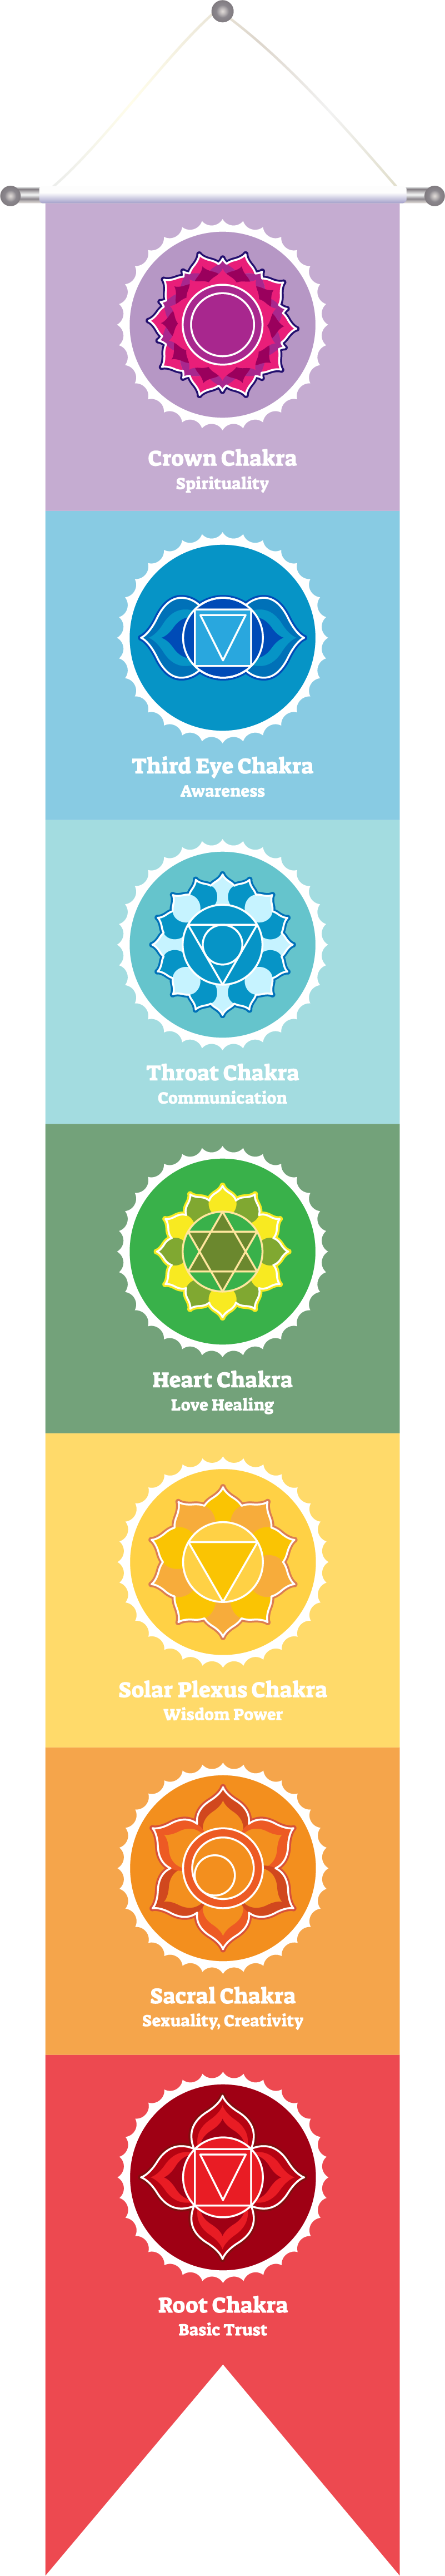 TenStickers. Chakra Symbol Chart Home Wall Sticker. Know your root chakra from your third eye chakra with this beautiful chakra symbol chart wall sticker. Free worldwide delivery available!